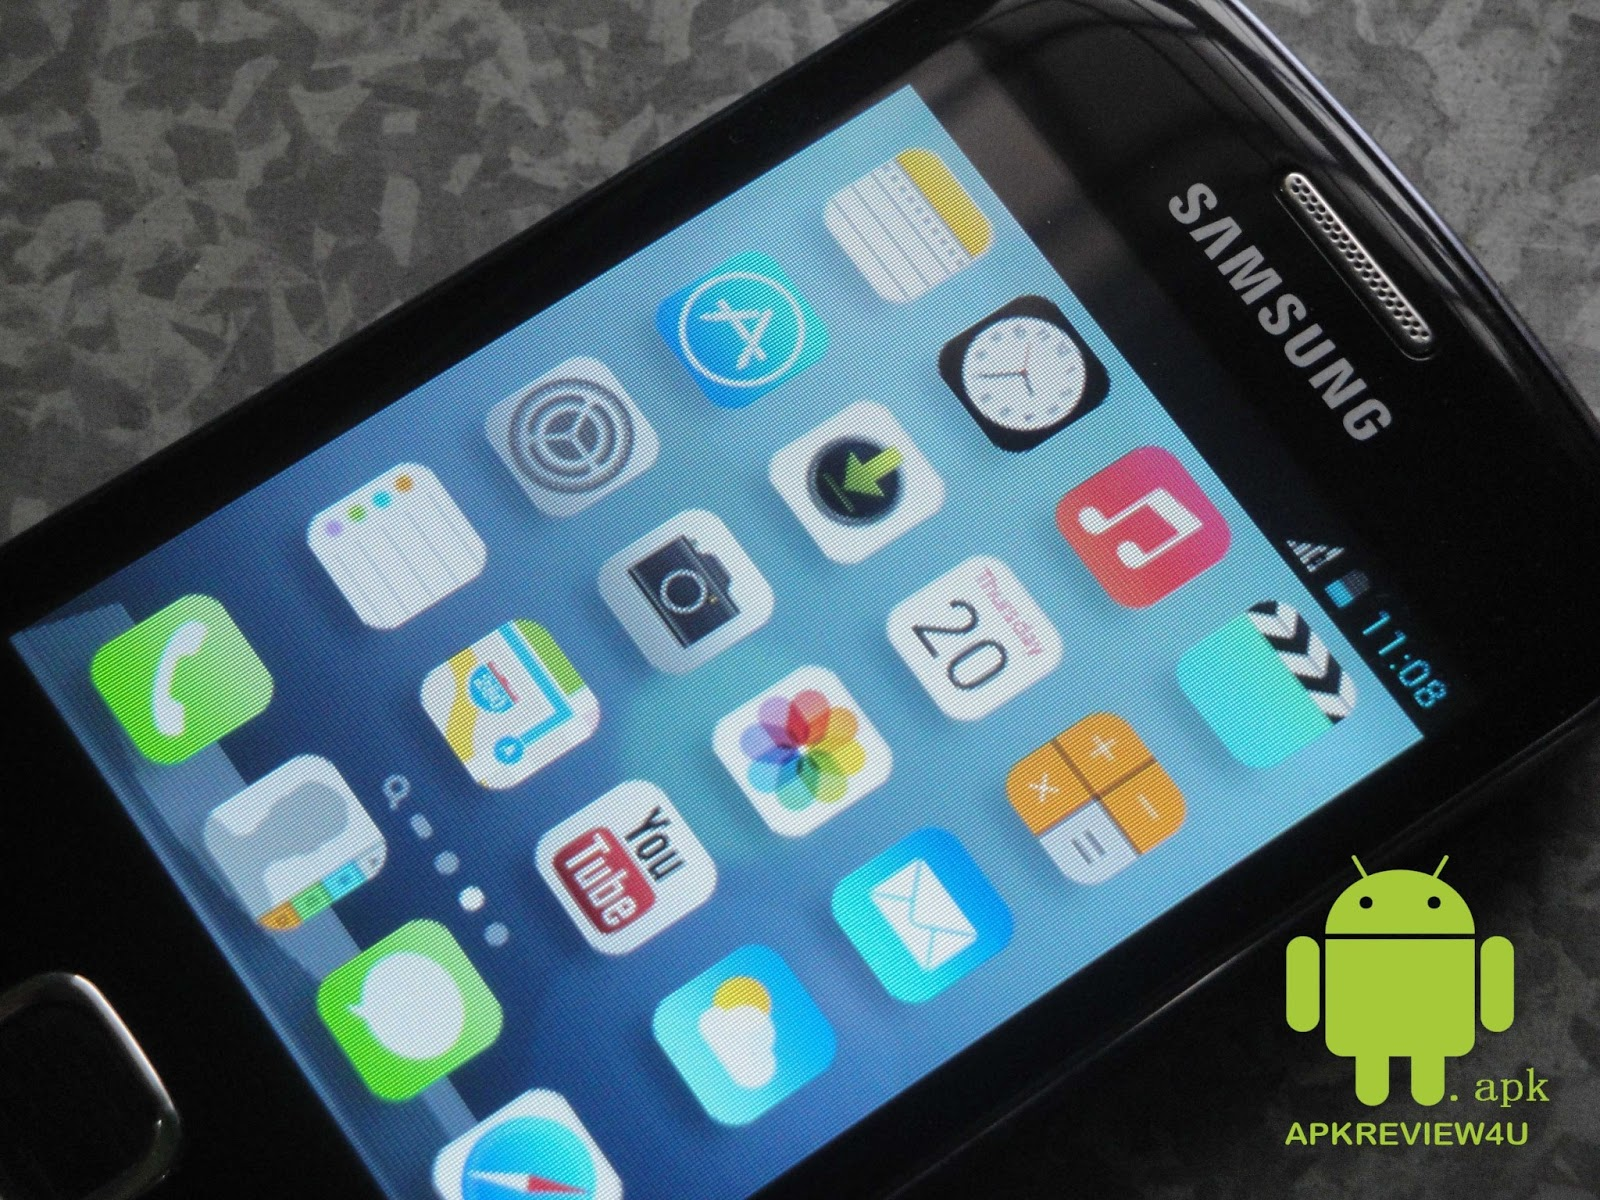 APK REVIEW FOR YOU : How to get iOS 7 ui on any android mobile?